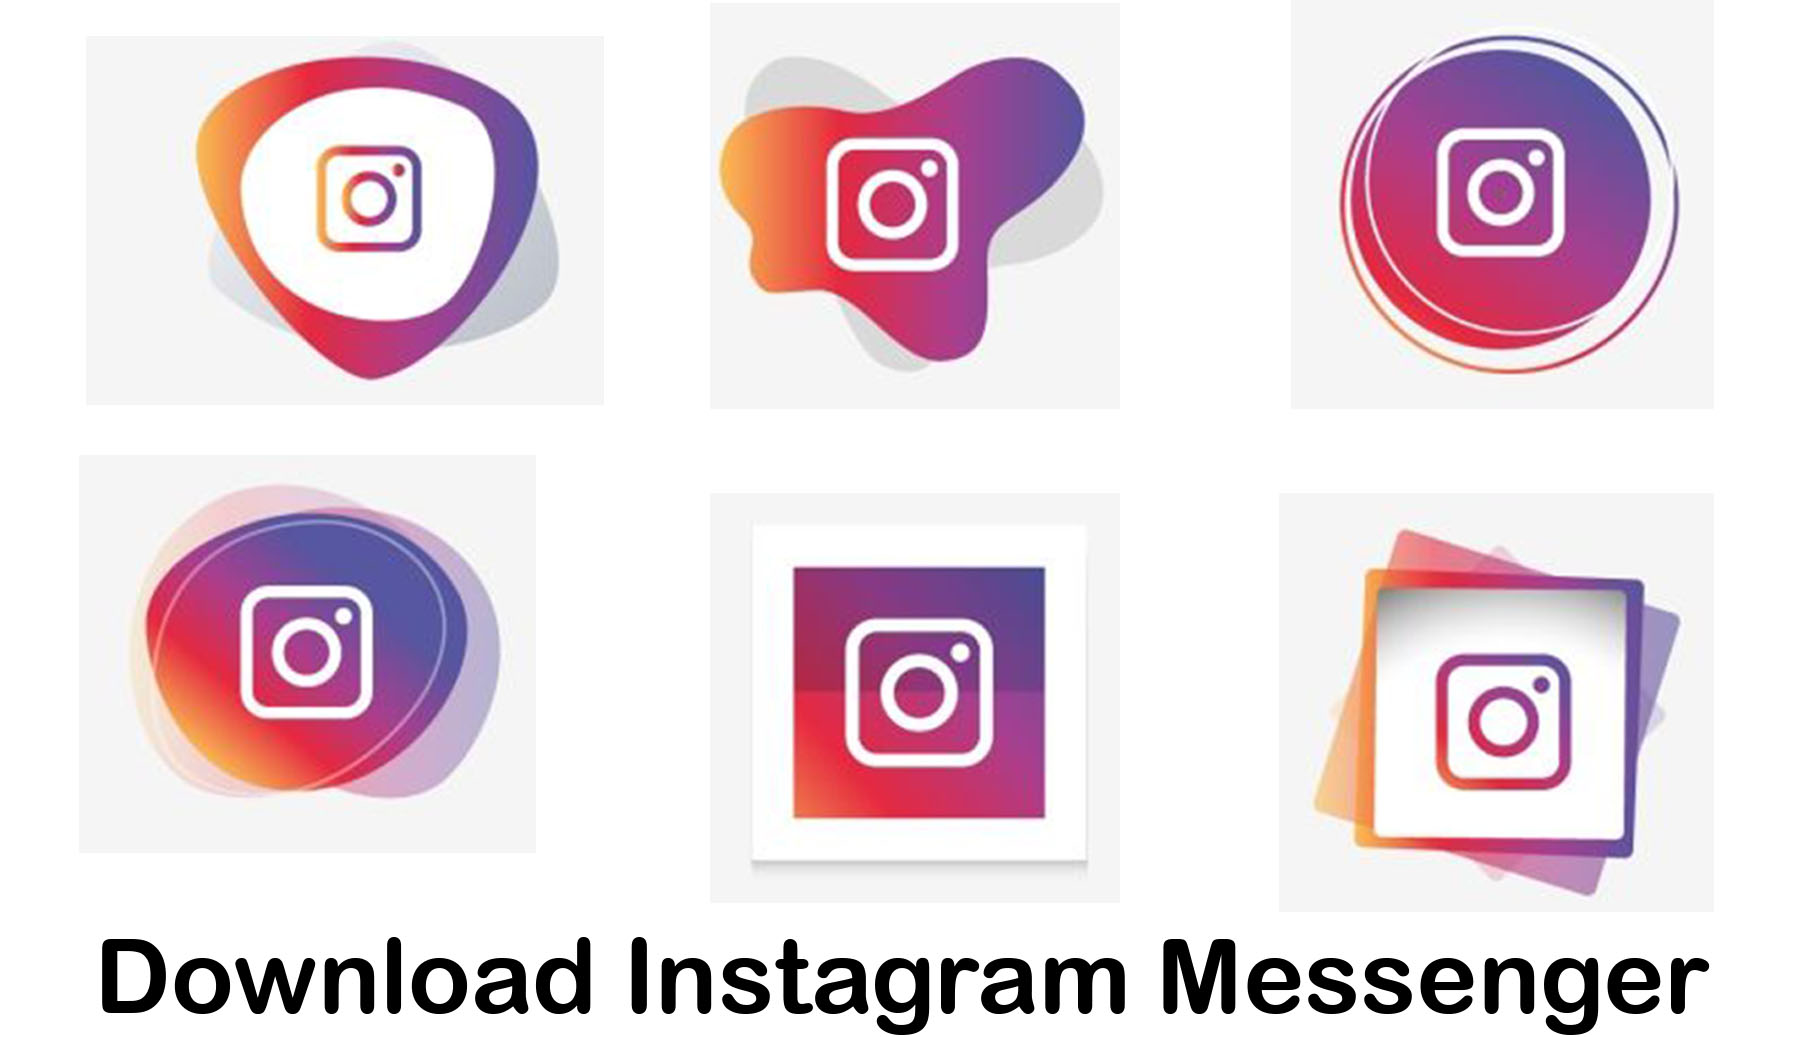 Download Instagram Messenger - Steps to Get Instagram Messenger On Your Device